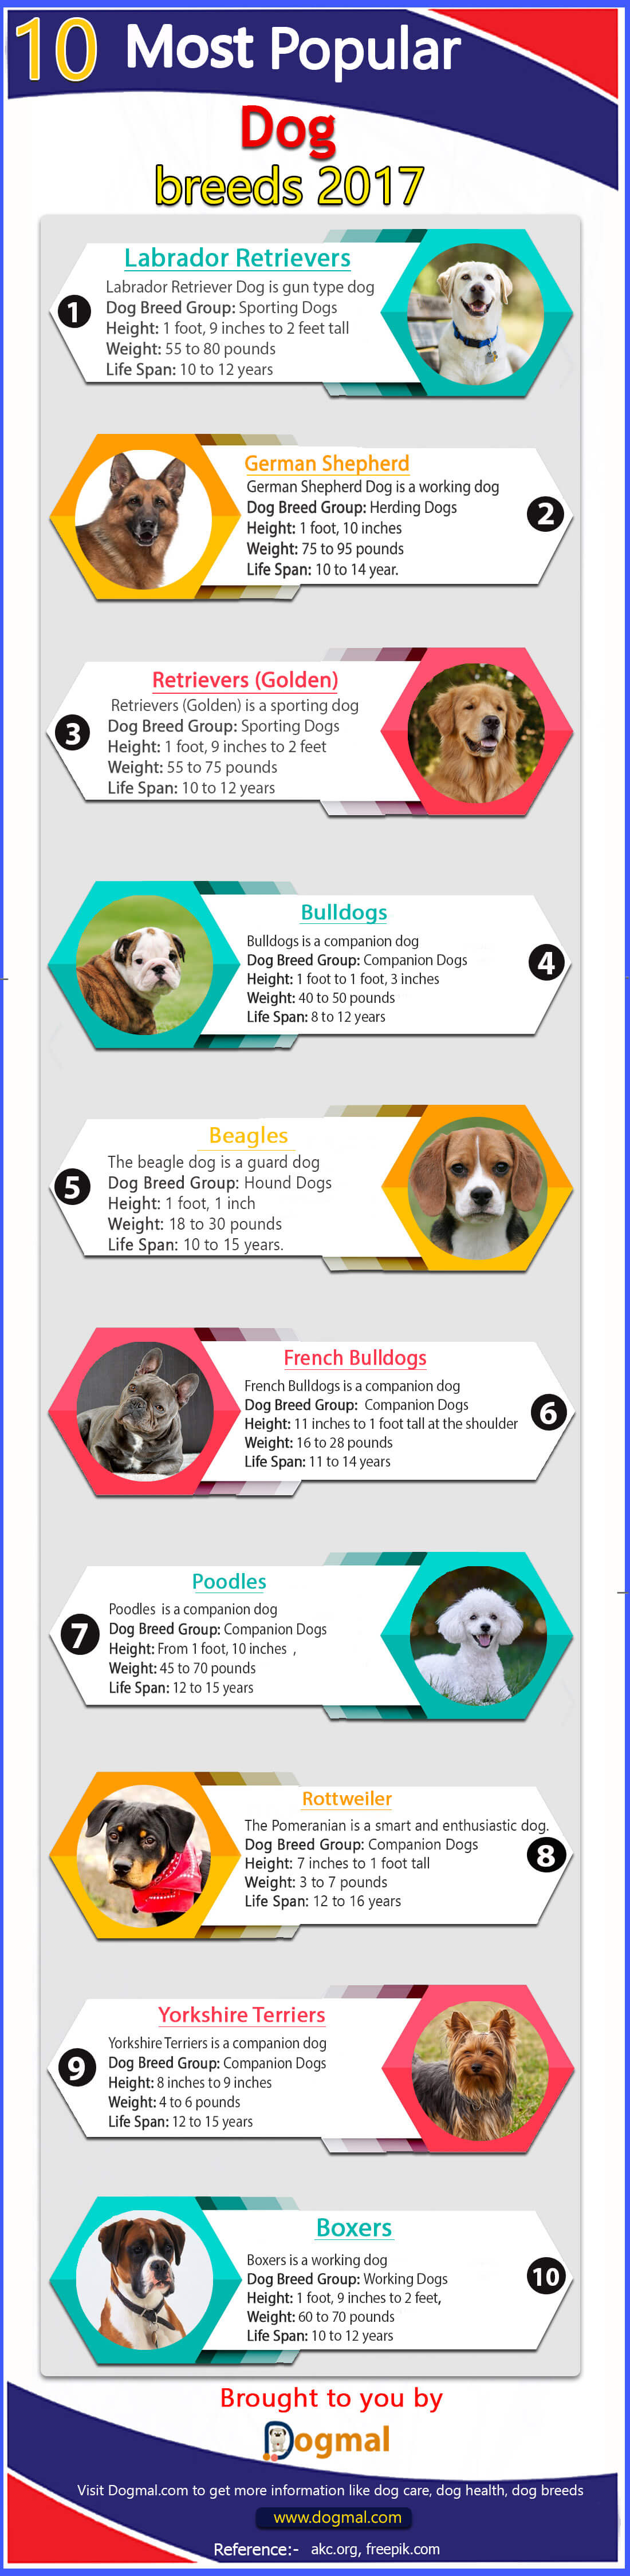 Most popular dog breeds 2017